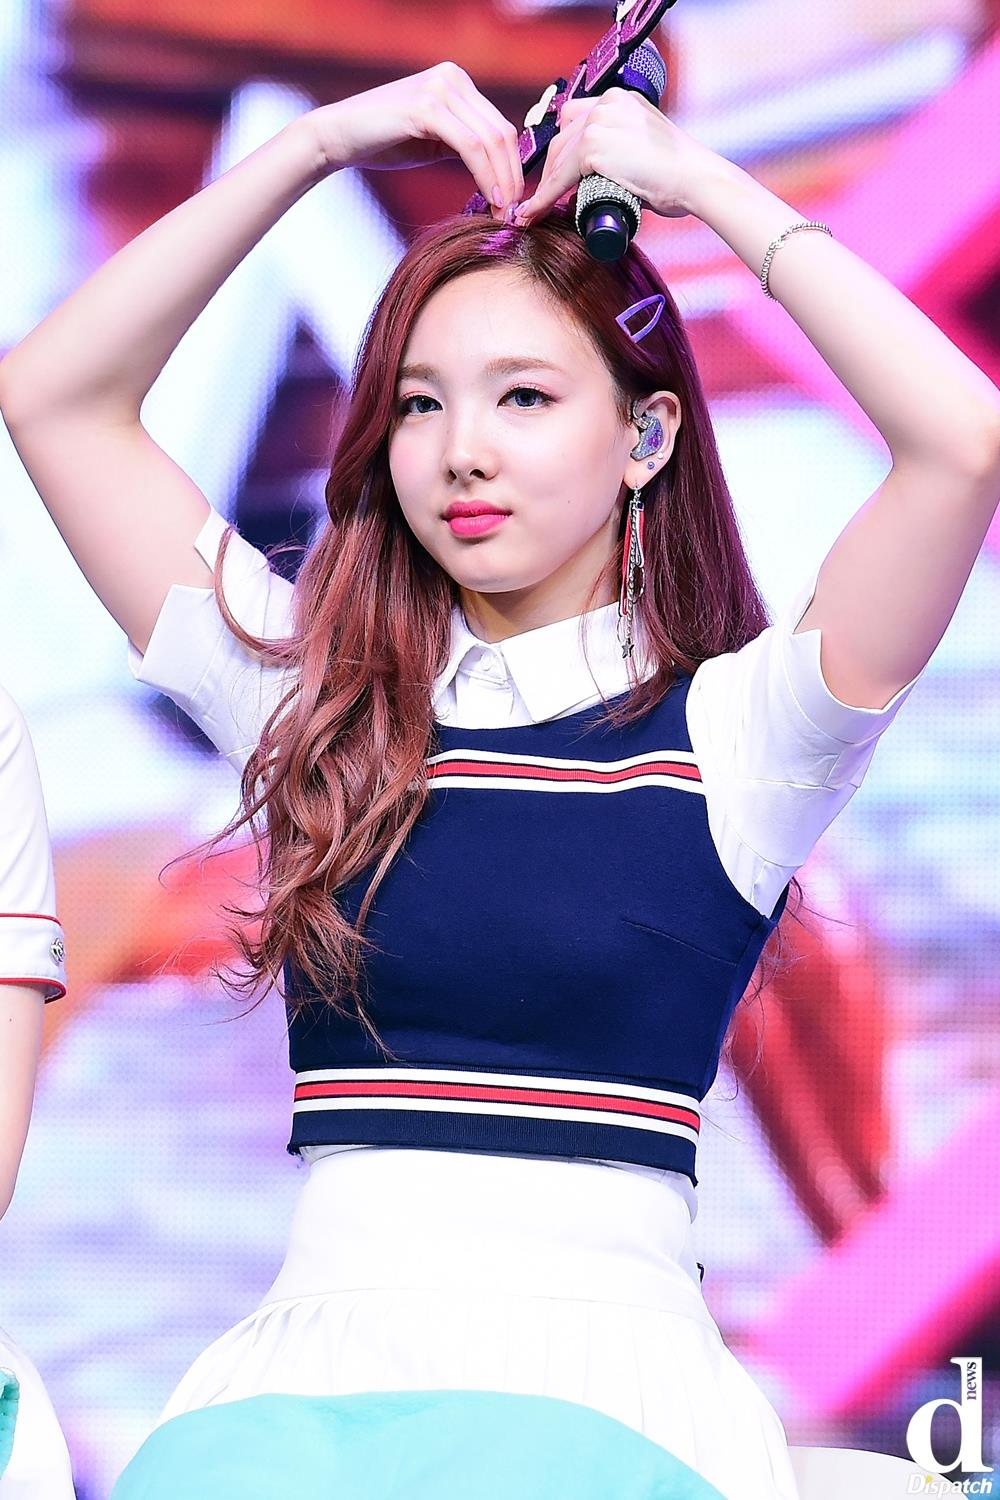 Who Is Lovelier Nayeon Of Twice Vs Joy Of Red Velvet